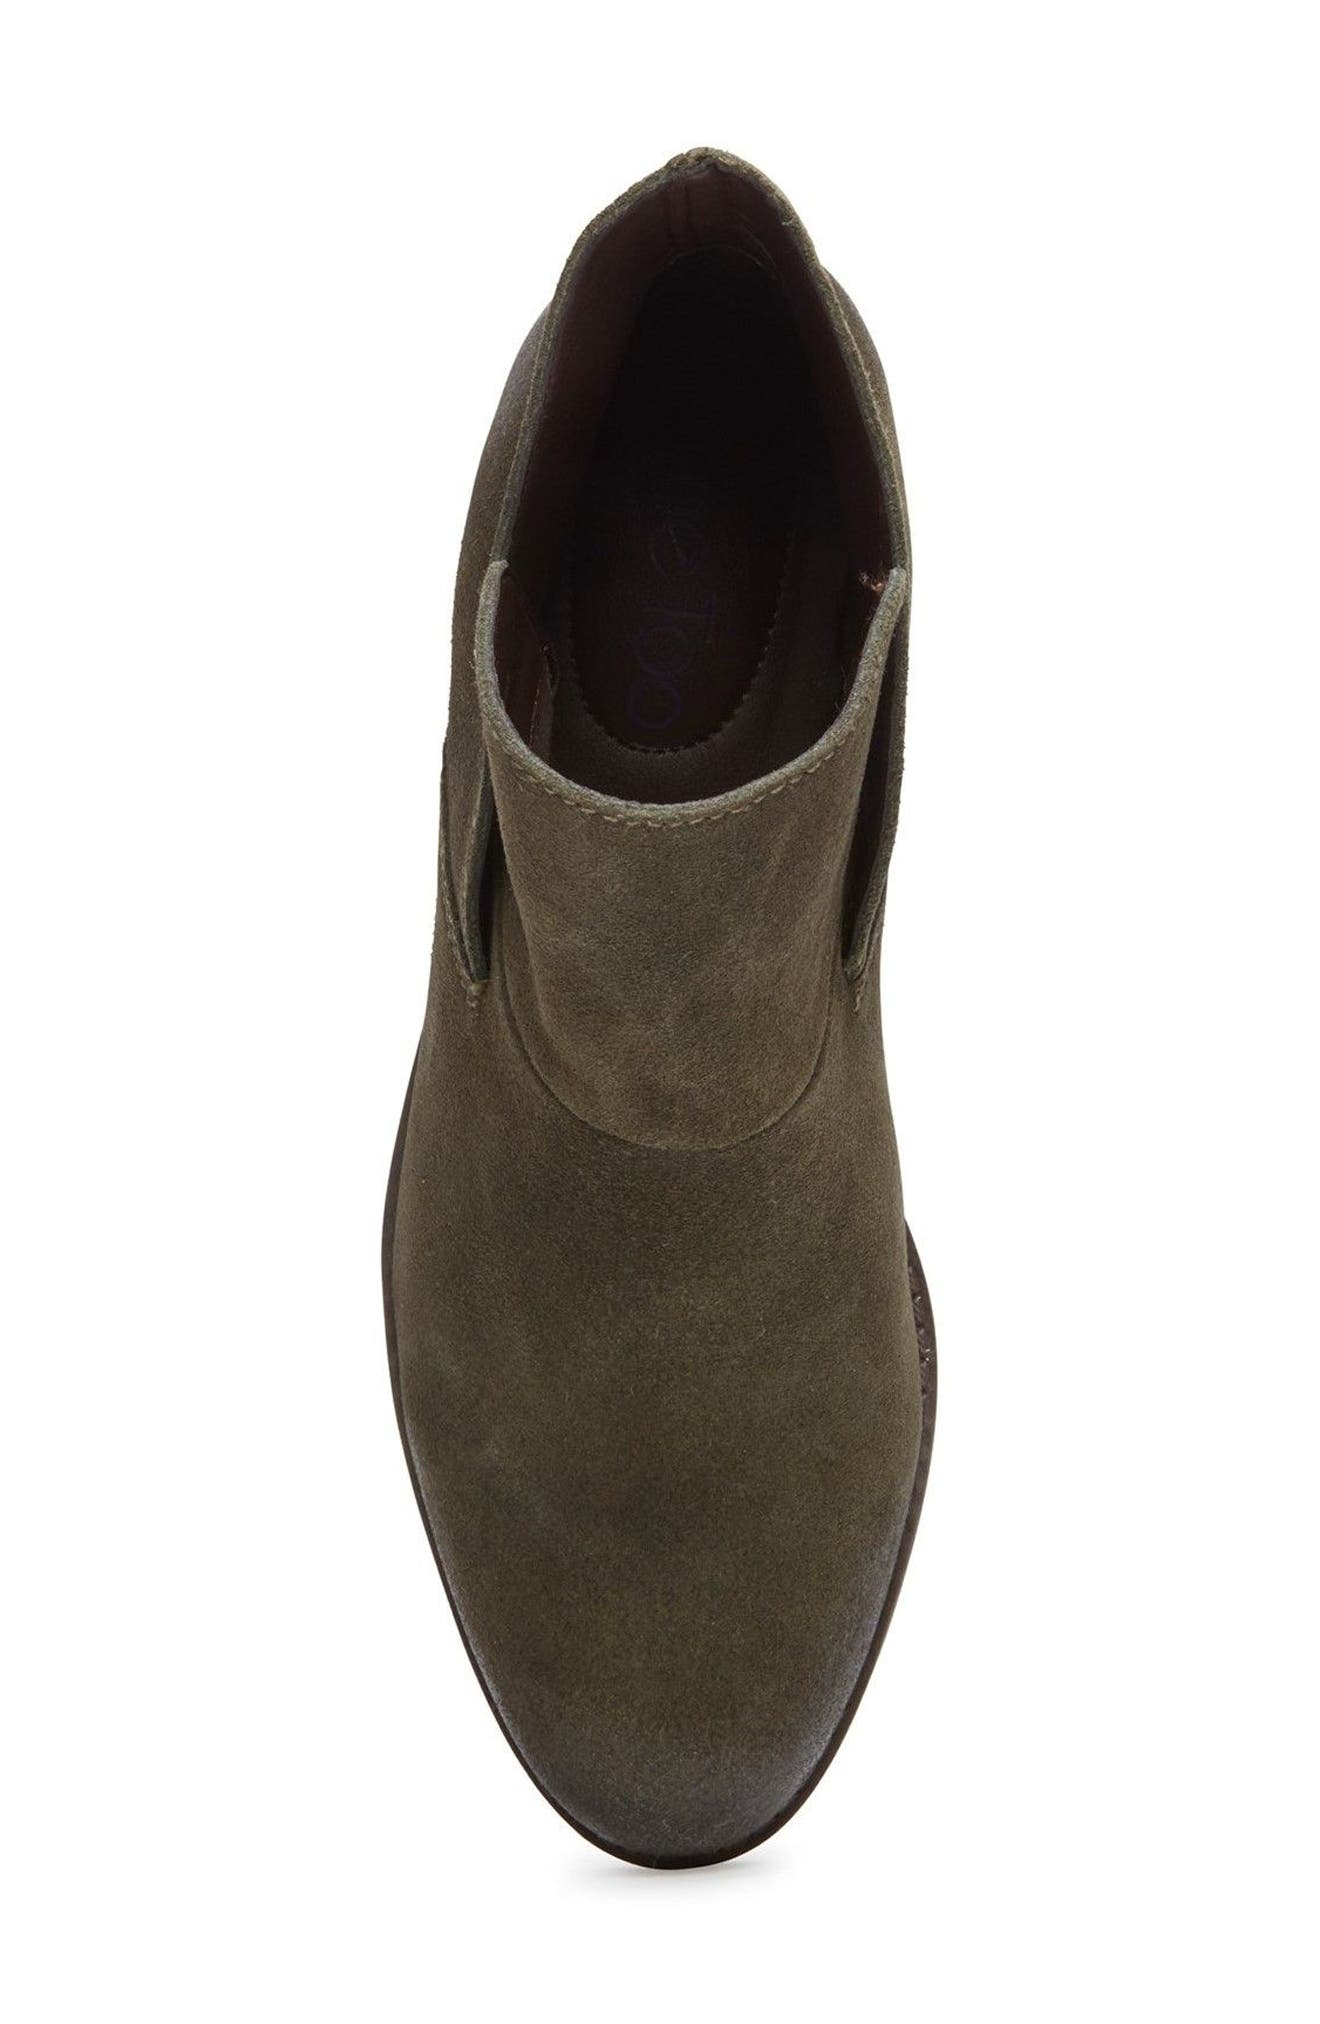 Me Too Zena Ankle Boot,                             Alternate thumbnail 4, color,                             Moss Suede